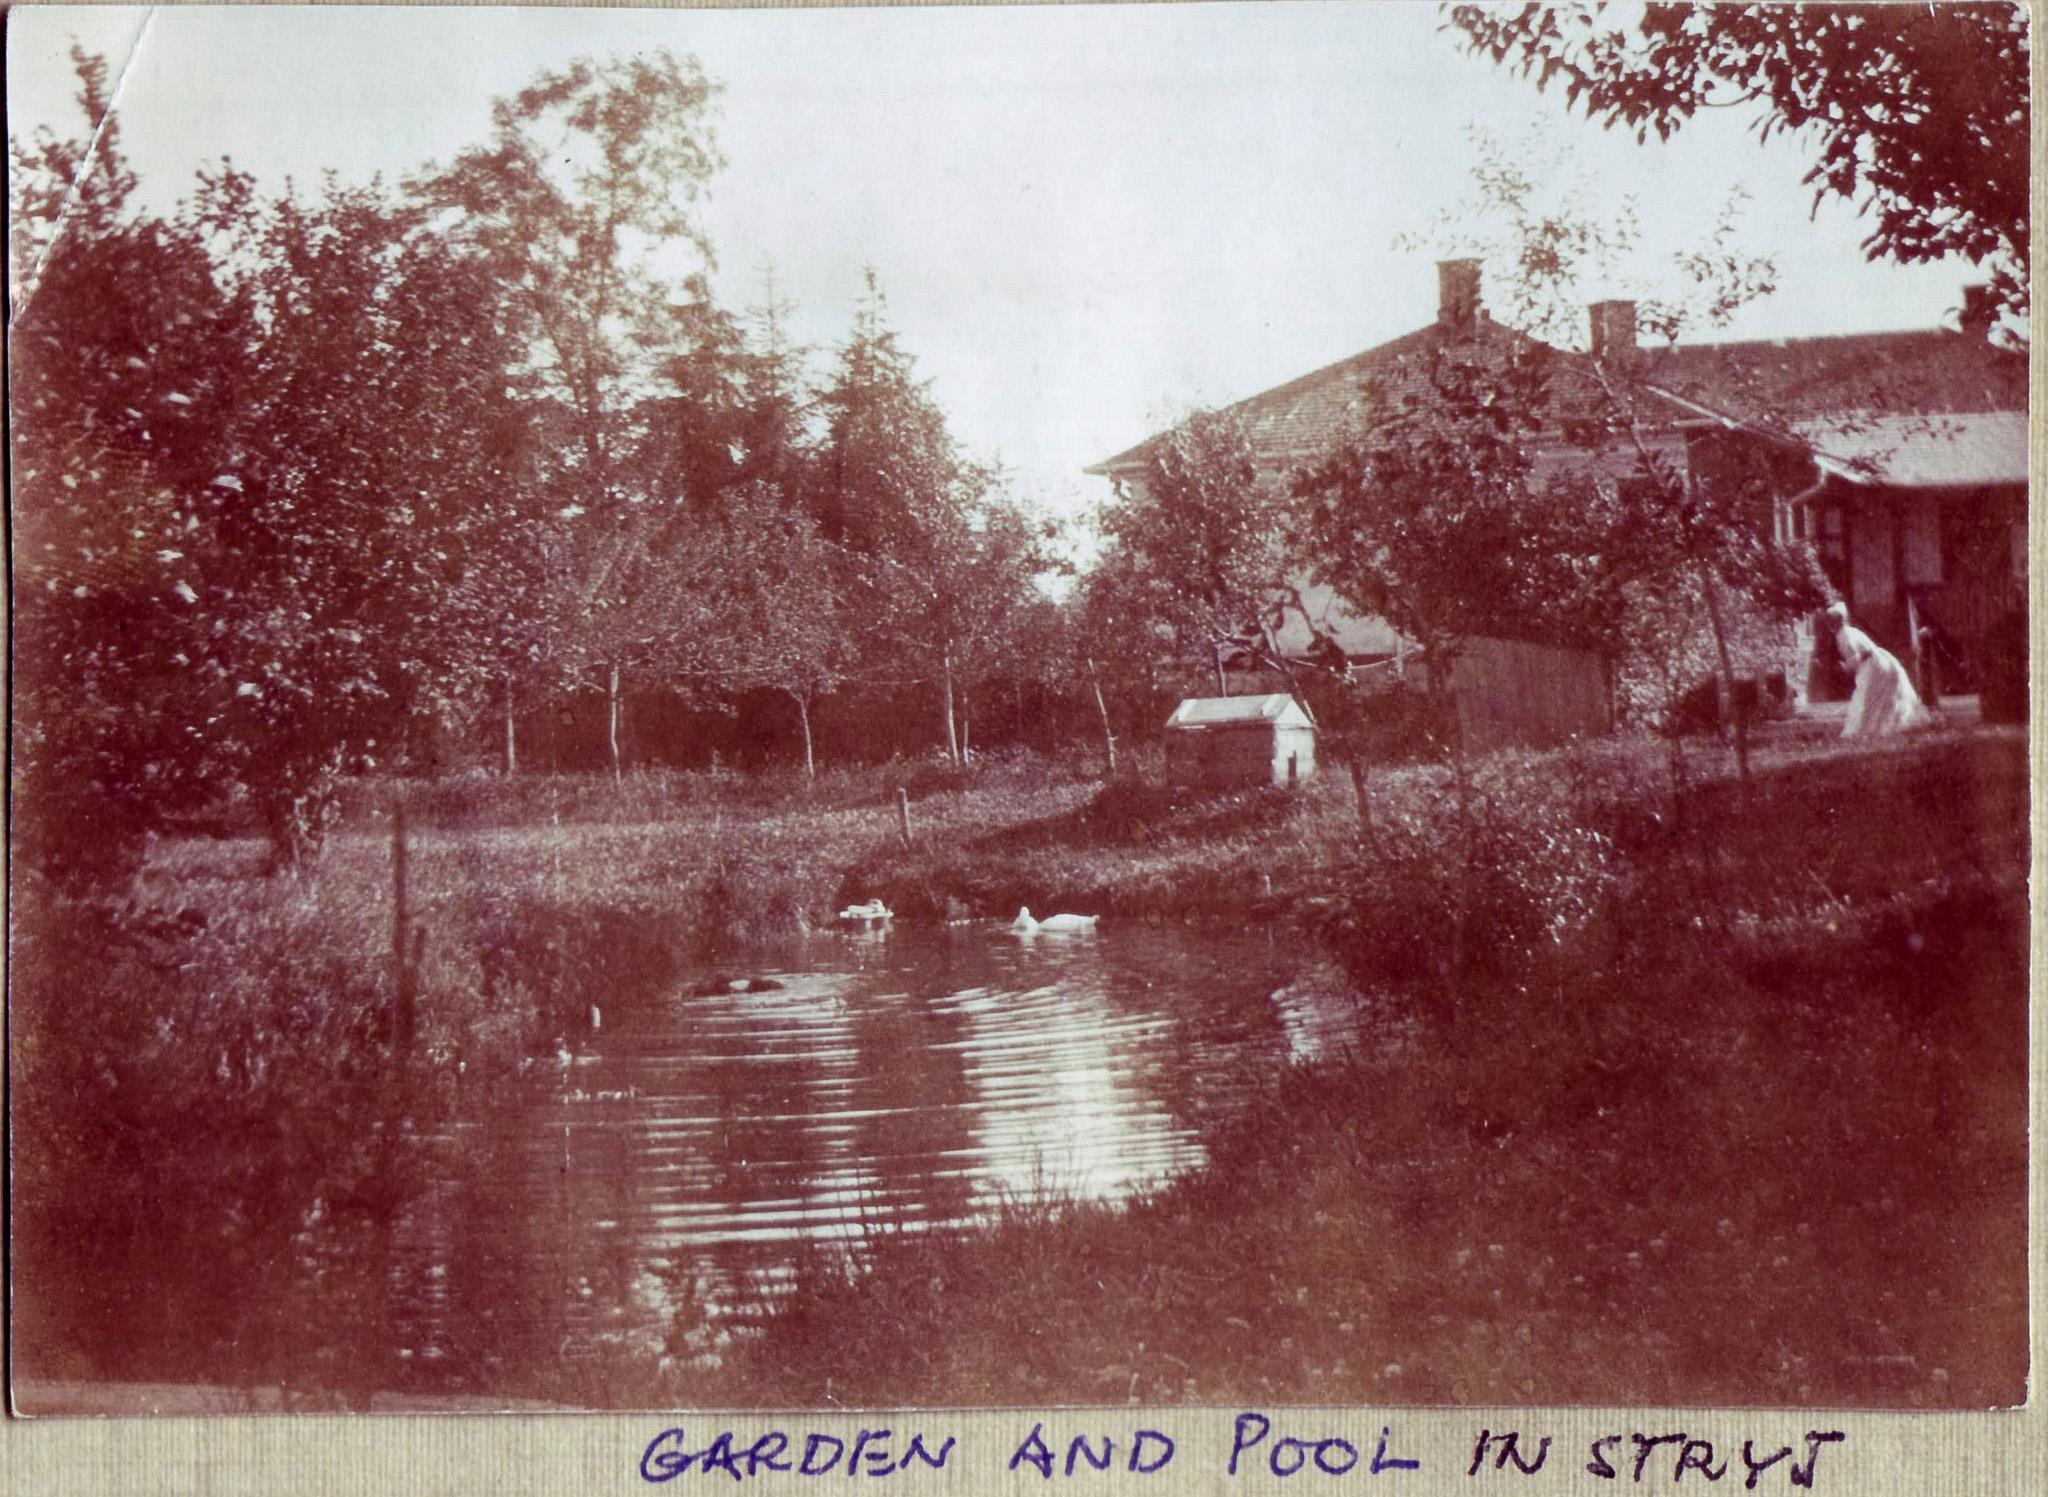 Garden and Pool in Stryj